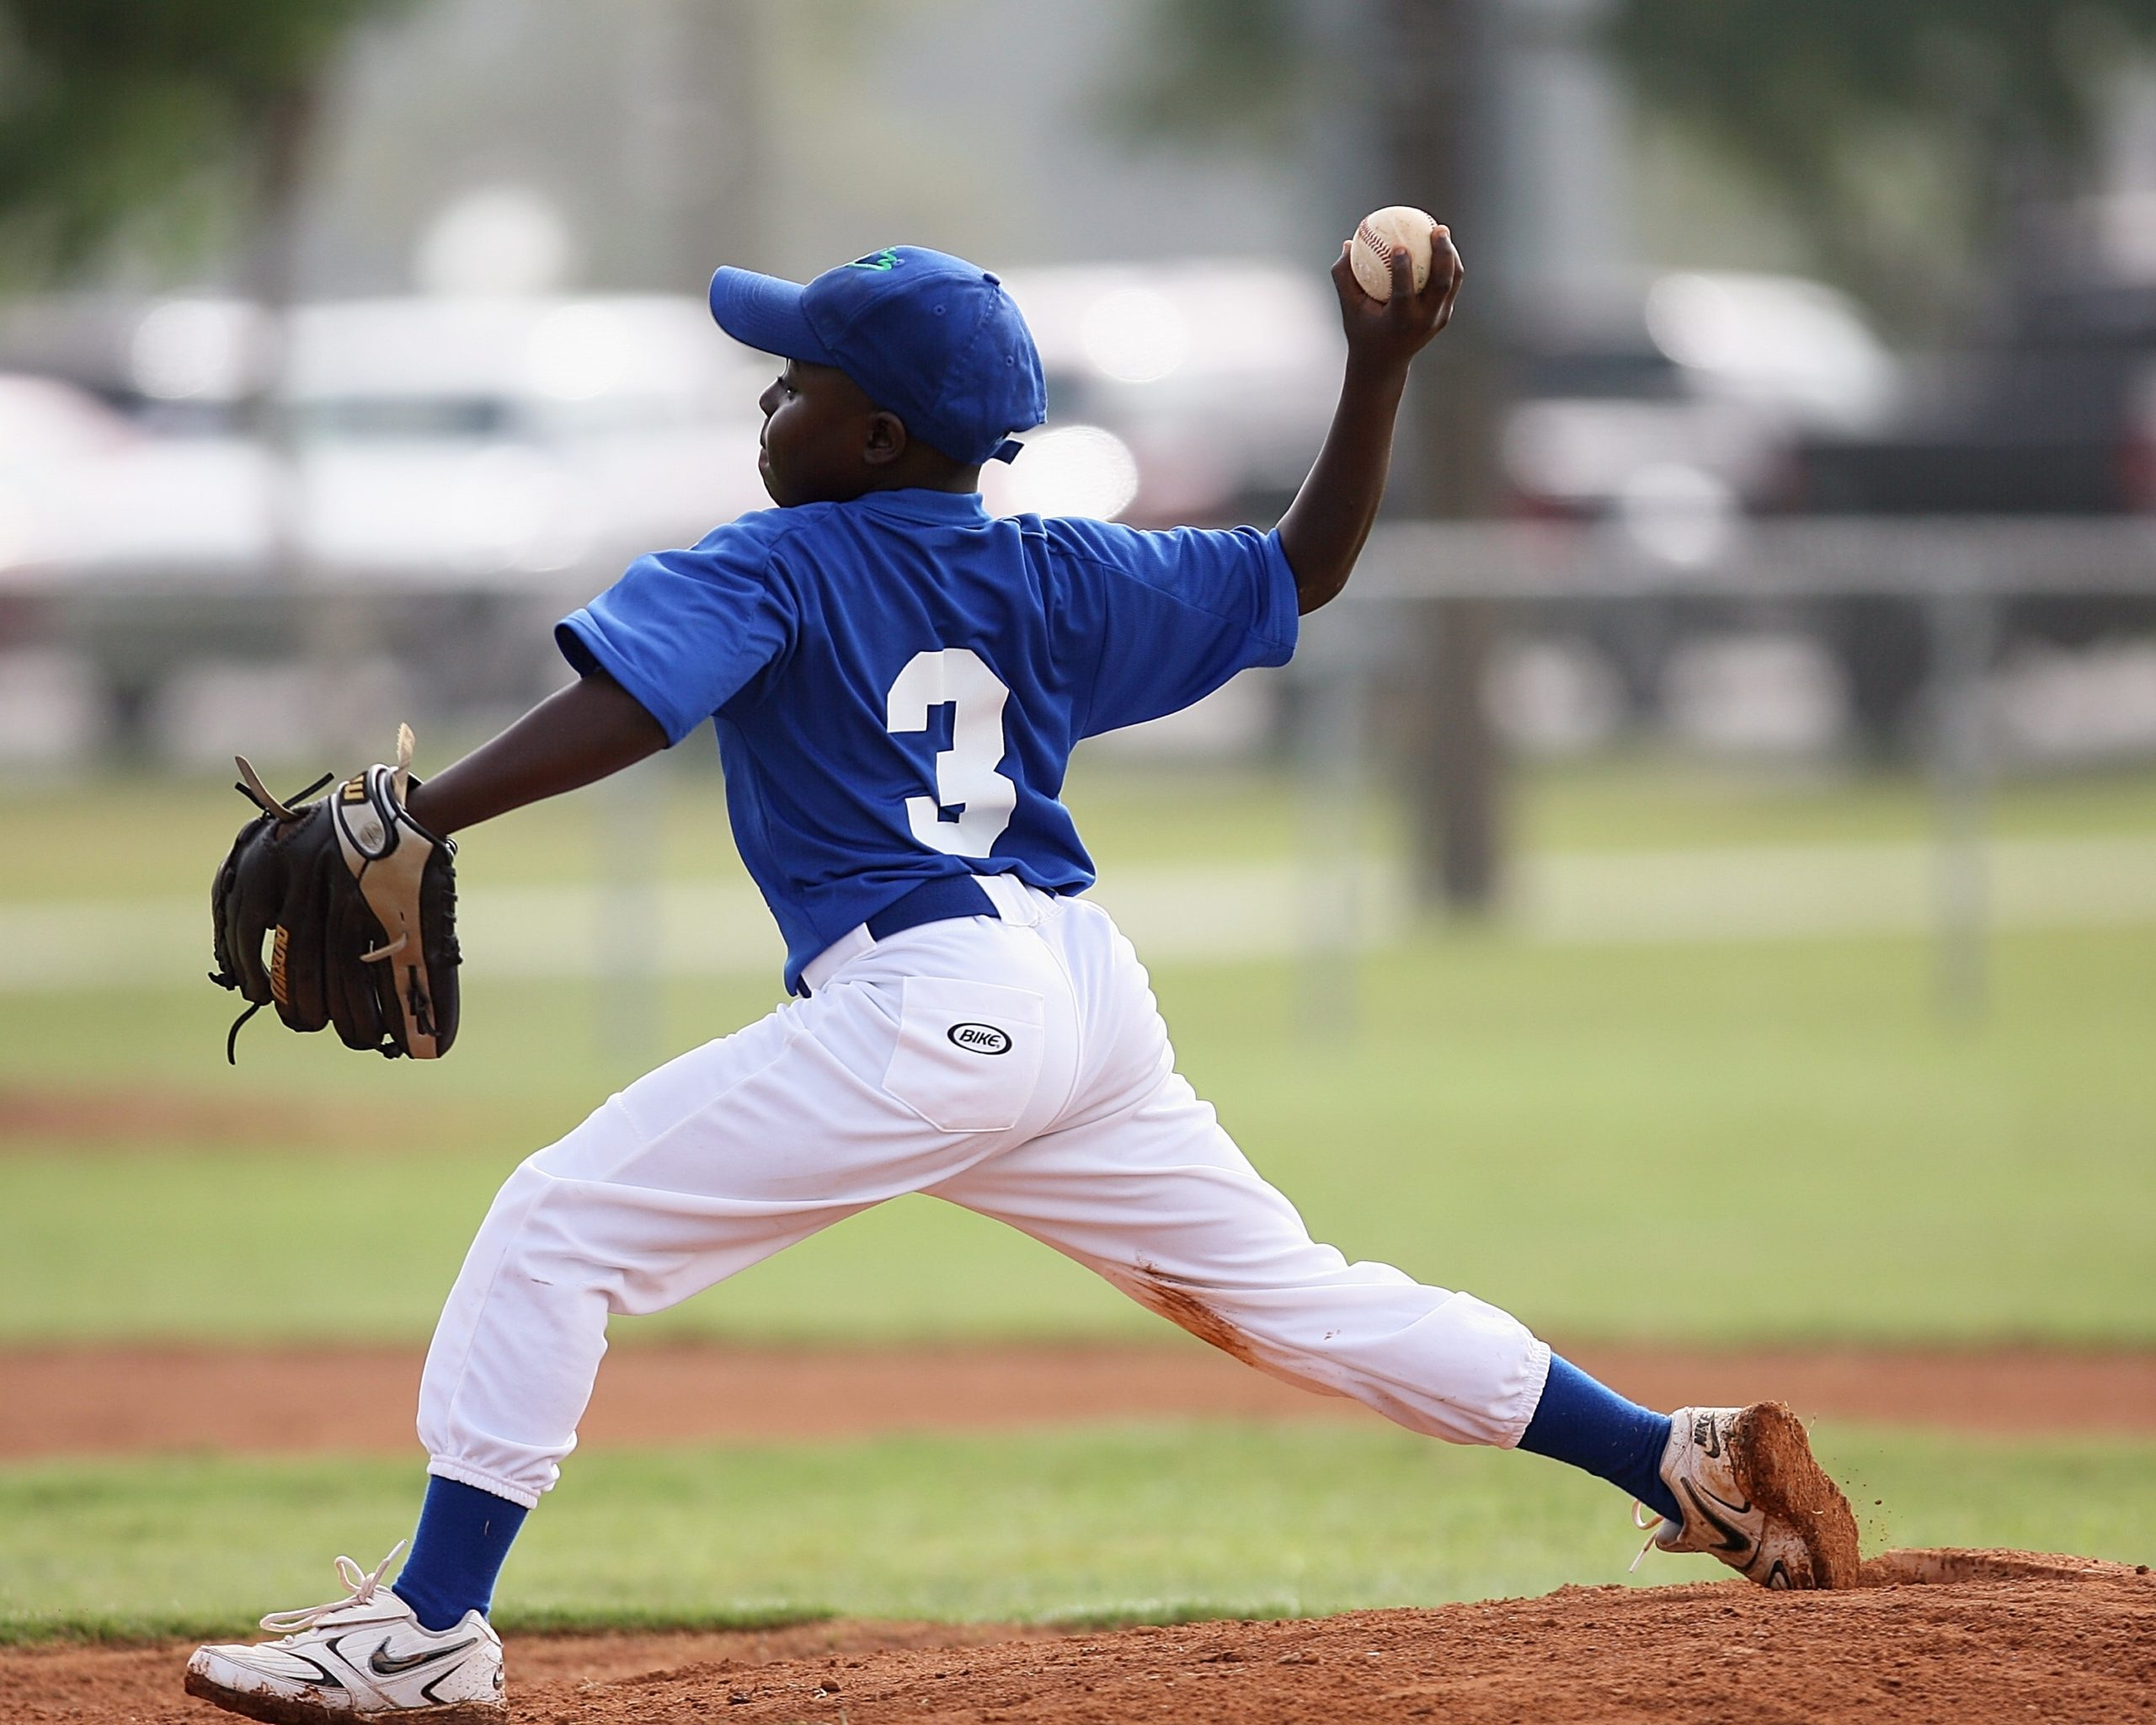 Youth Pitching: Which Side of the Rubber?